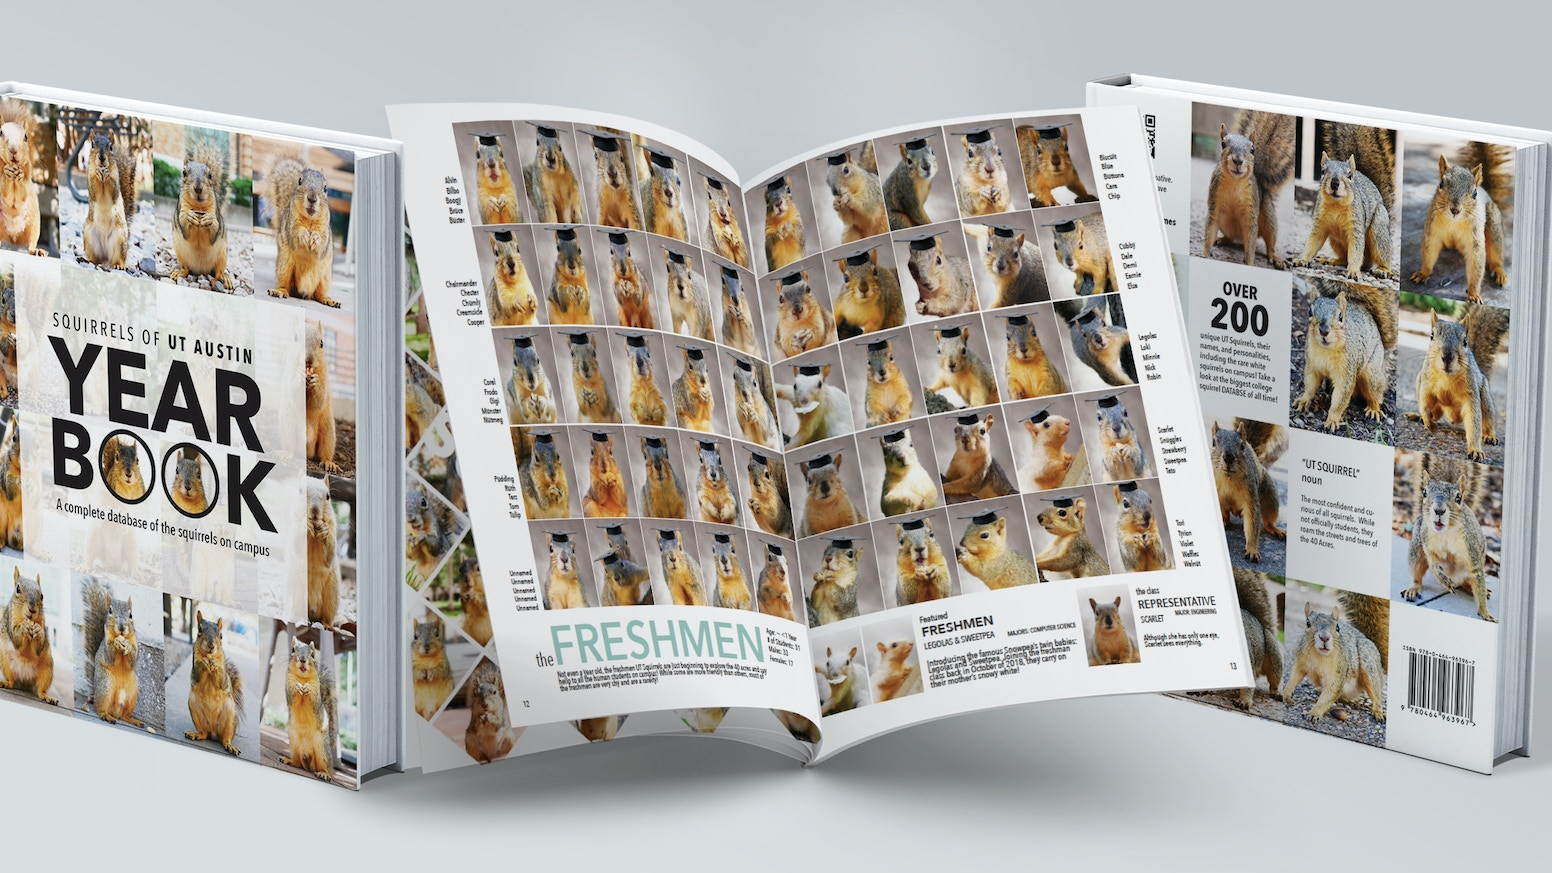 A yearbook... for squirrels!!! The Yearbook was 130% funded! Thank you to everyone who made this project possible! If you didn't get a chance to pre-order your copy, visit www.squirrelsofut.com to get your yearbook now!